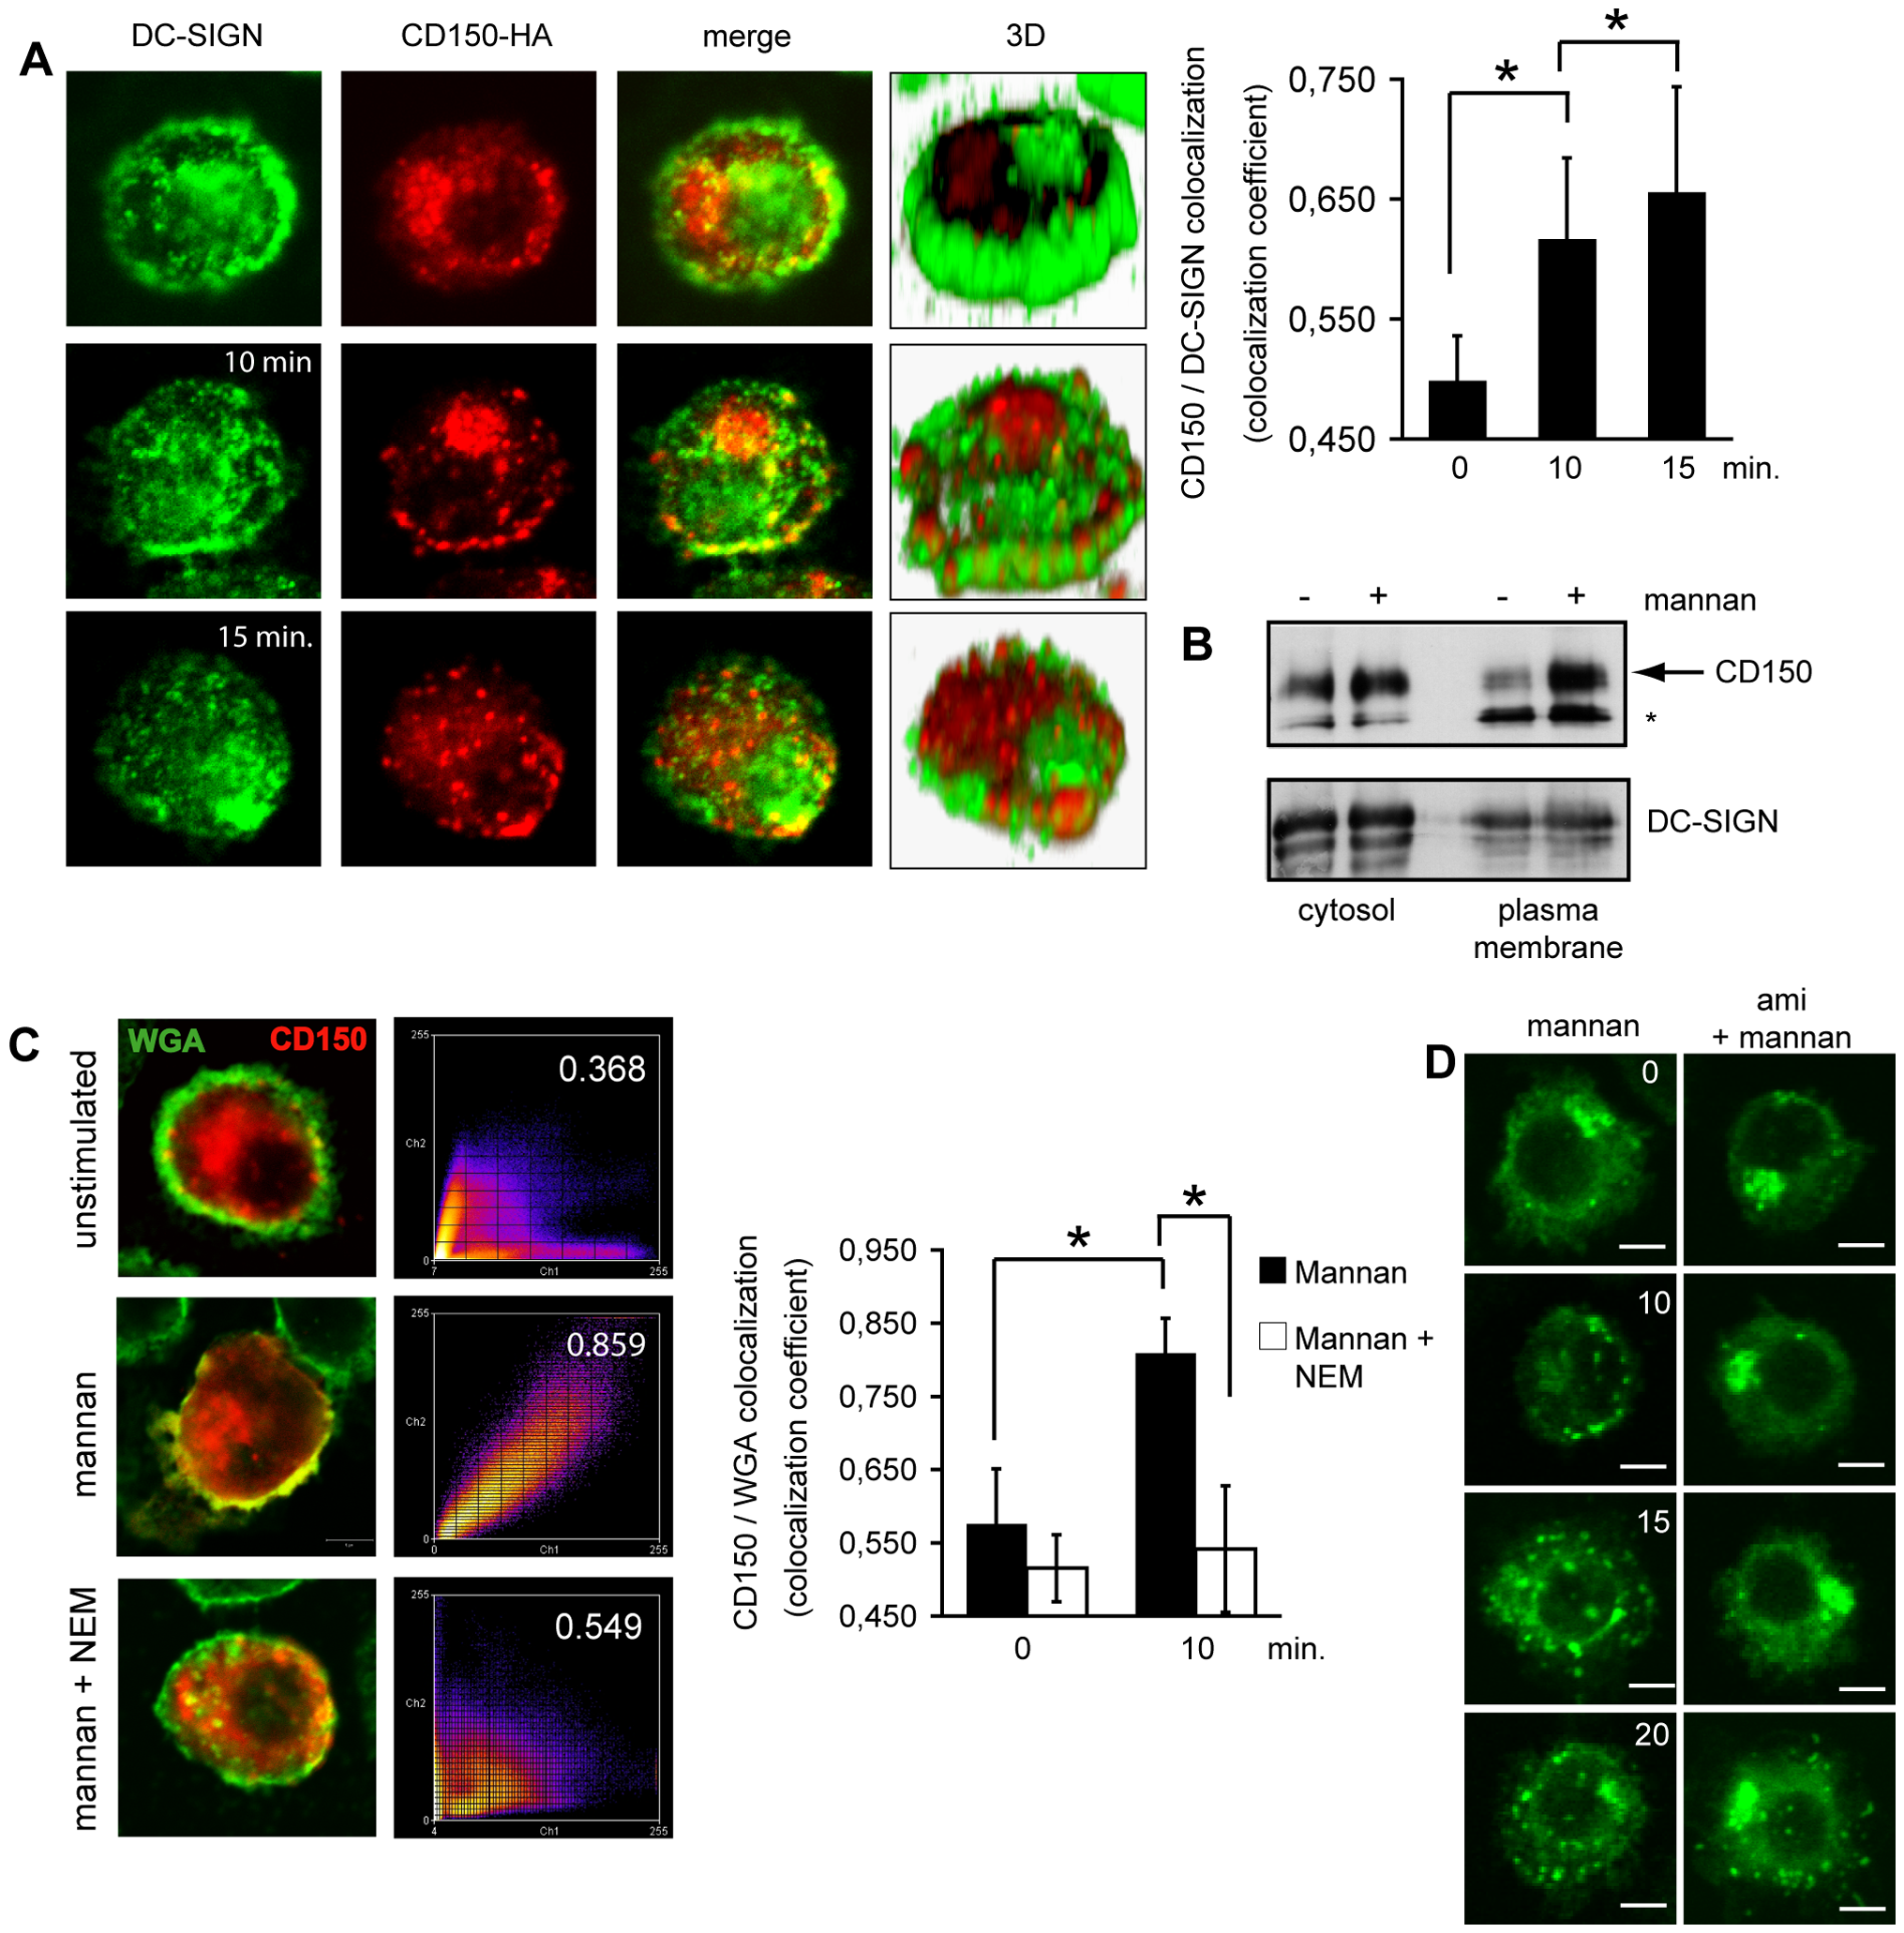 DC-SIGN ligation causes SMase dependent membrane redistribution of CD150 from intracellular compartments in DCs.